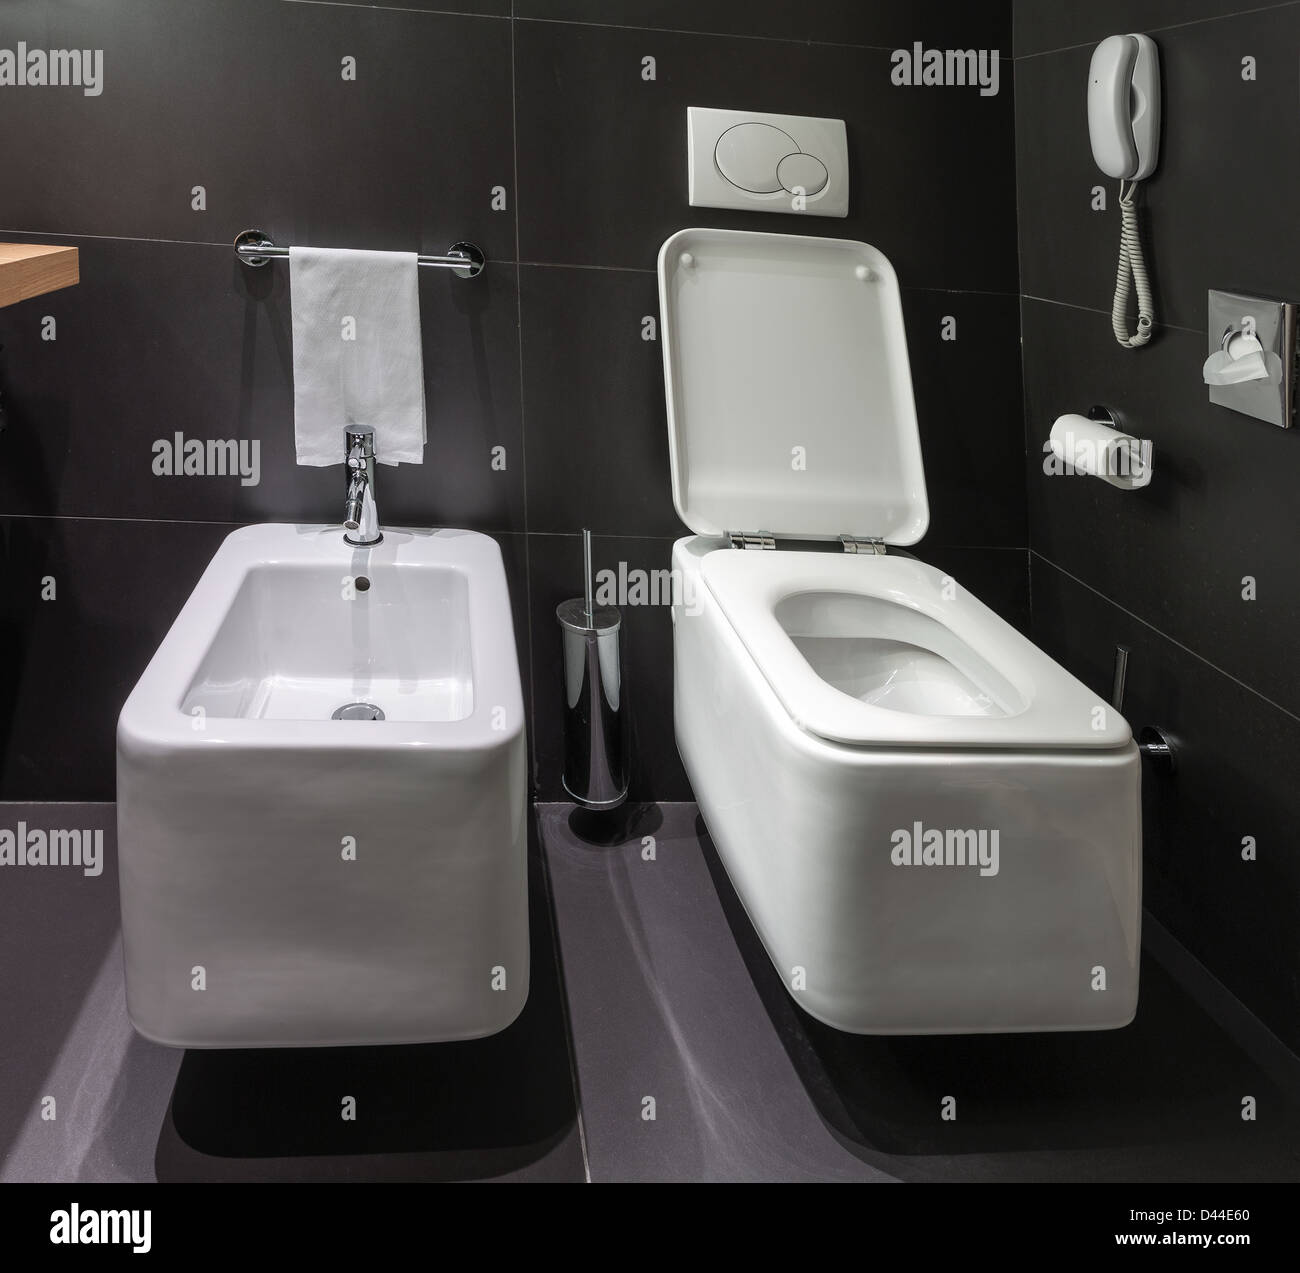 bathroom black toilet bowl bidet stock photos  bathroom black  - details of modern square toilet wc and bidet in black tiled bathroom stock image